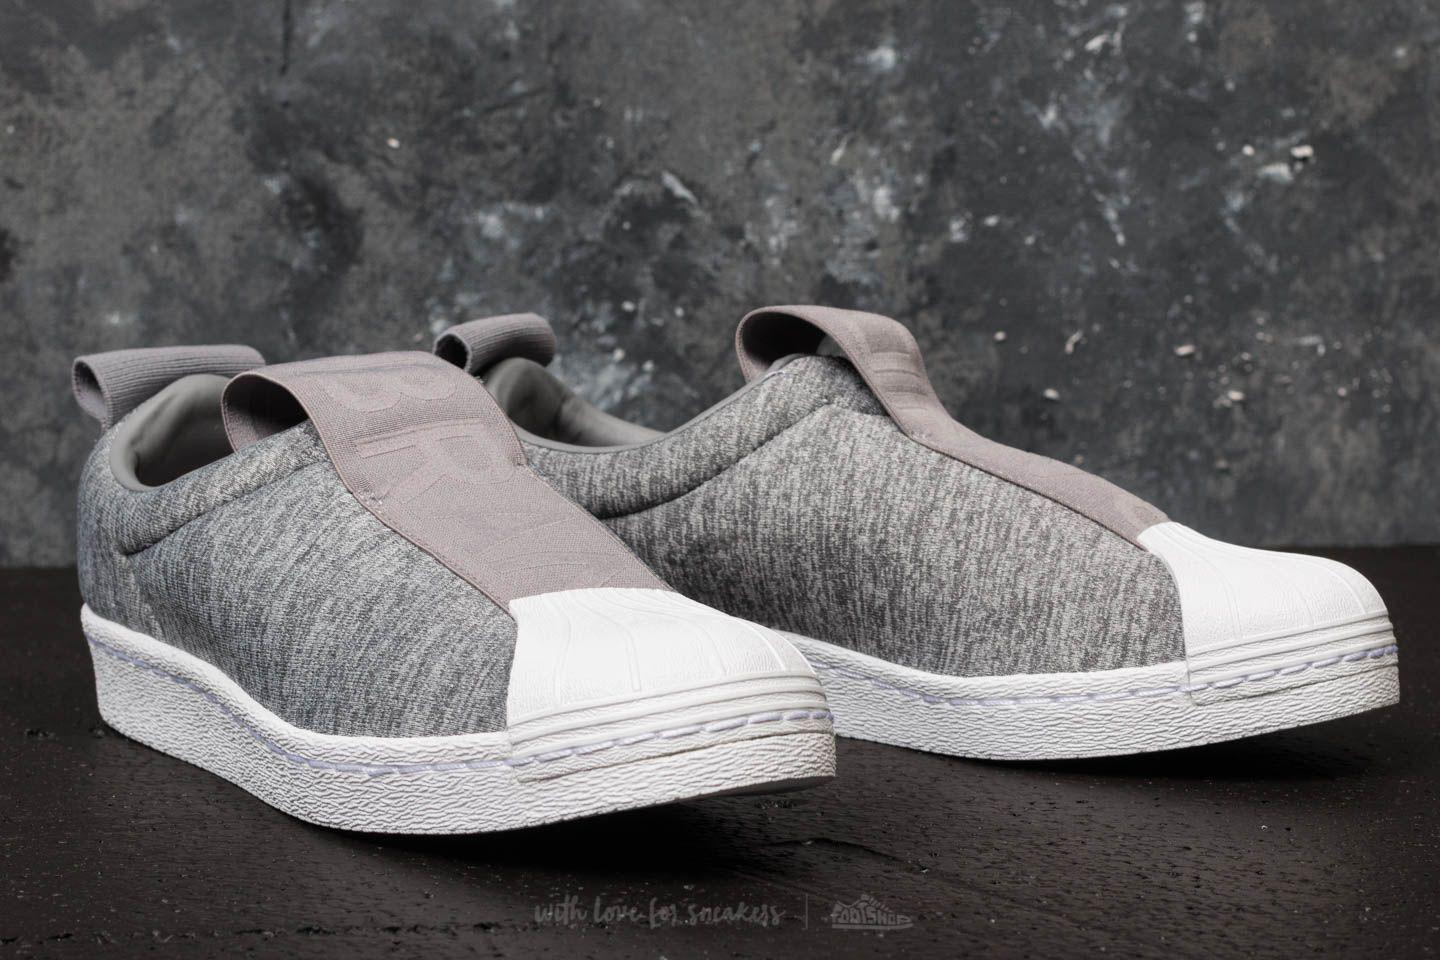 new concept 9a2b8 84844 ... Adidas Superstar Bw3s Slip-on W Grey Two Grey Three. View fullscreen